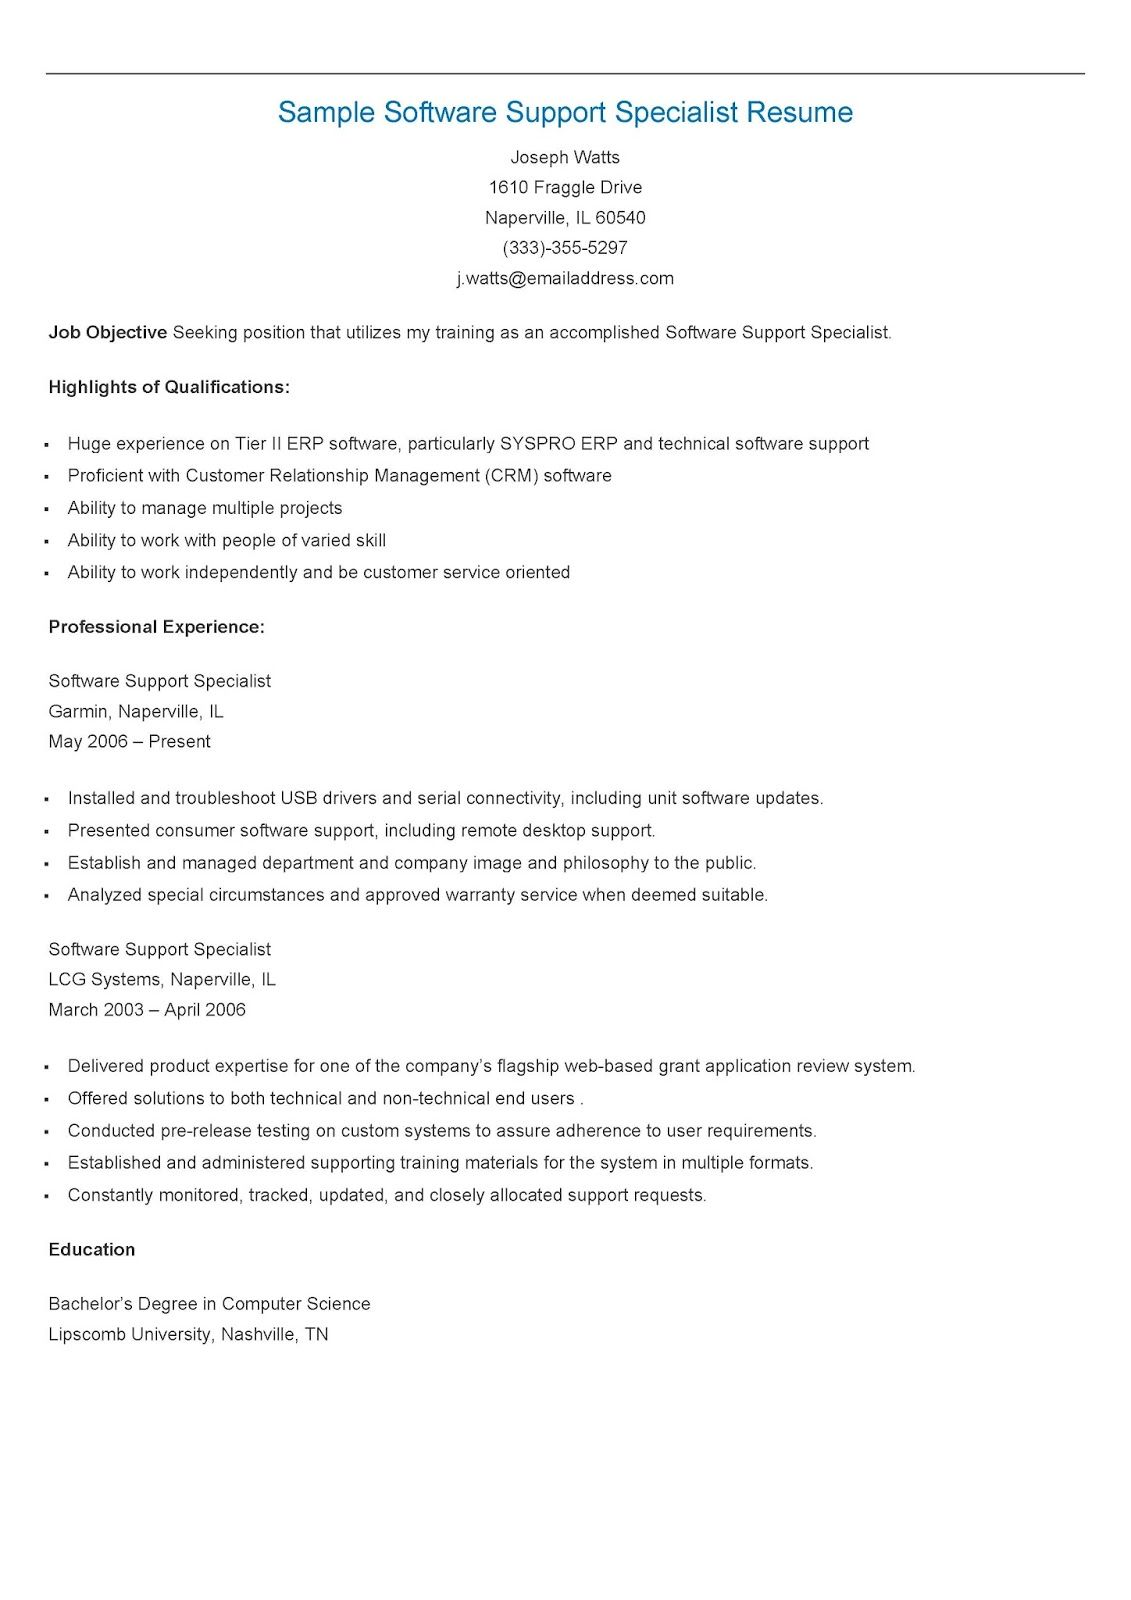 Sample Software Support Specialist Resume | resame | Pinterest ...